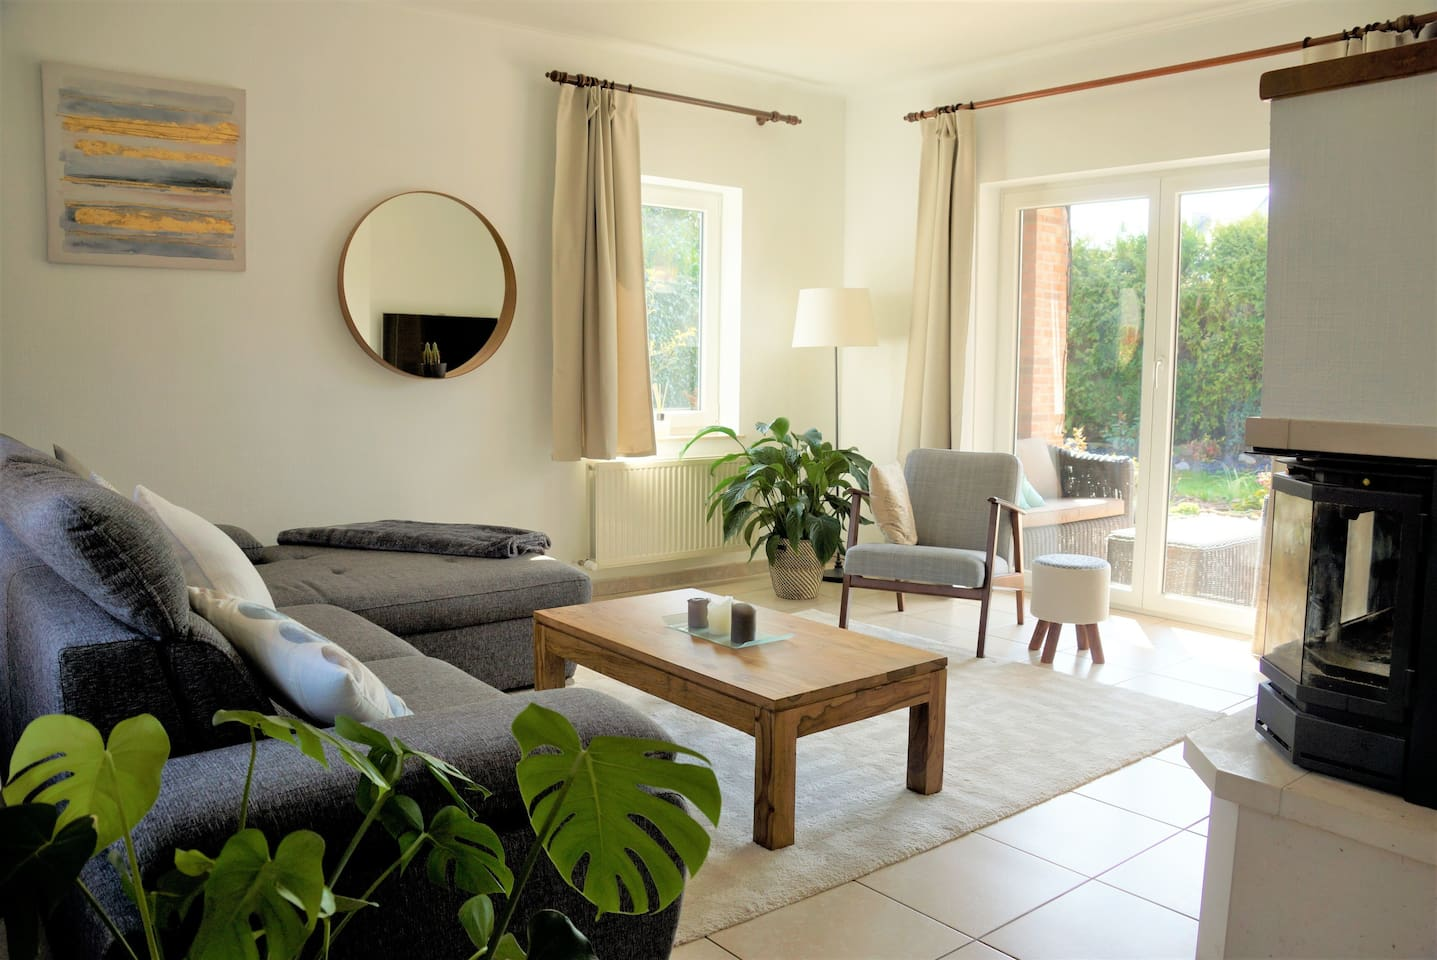 Living room - relax and enjoy your stay